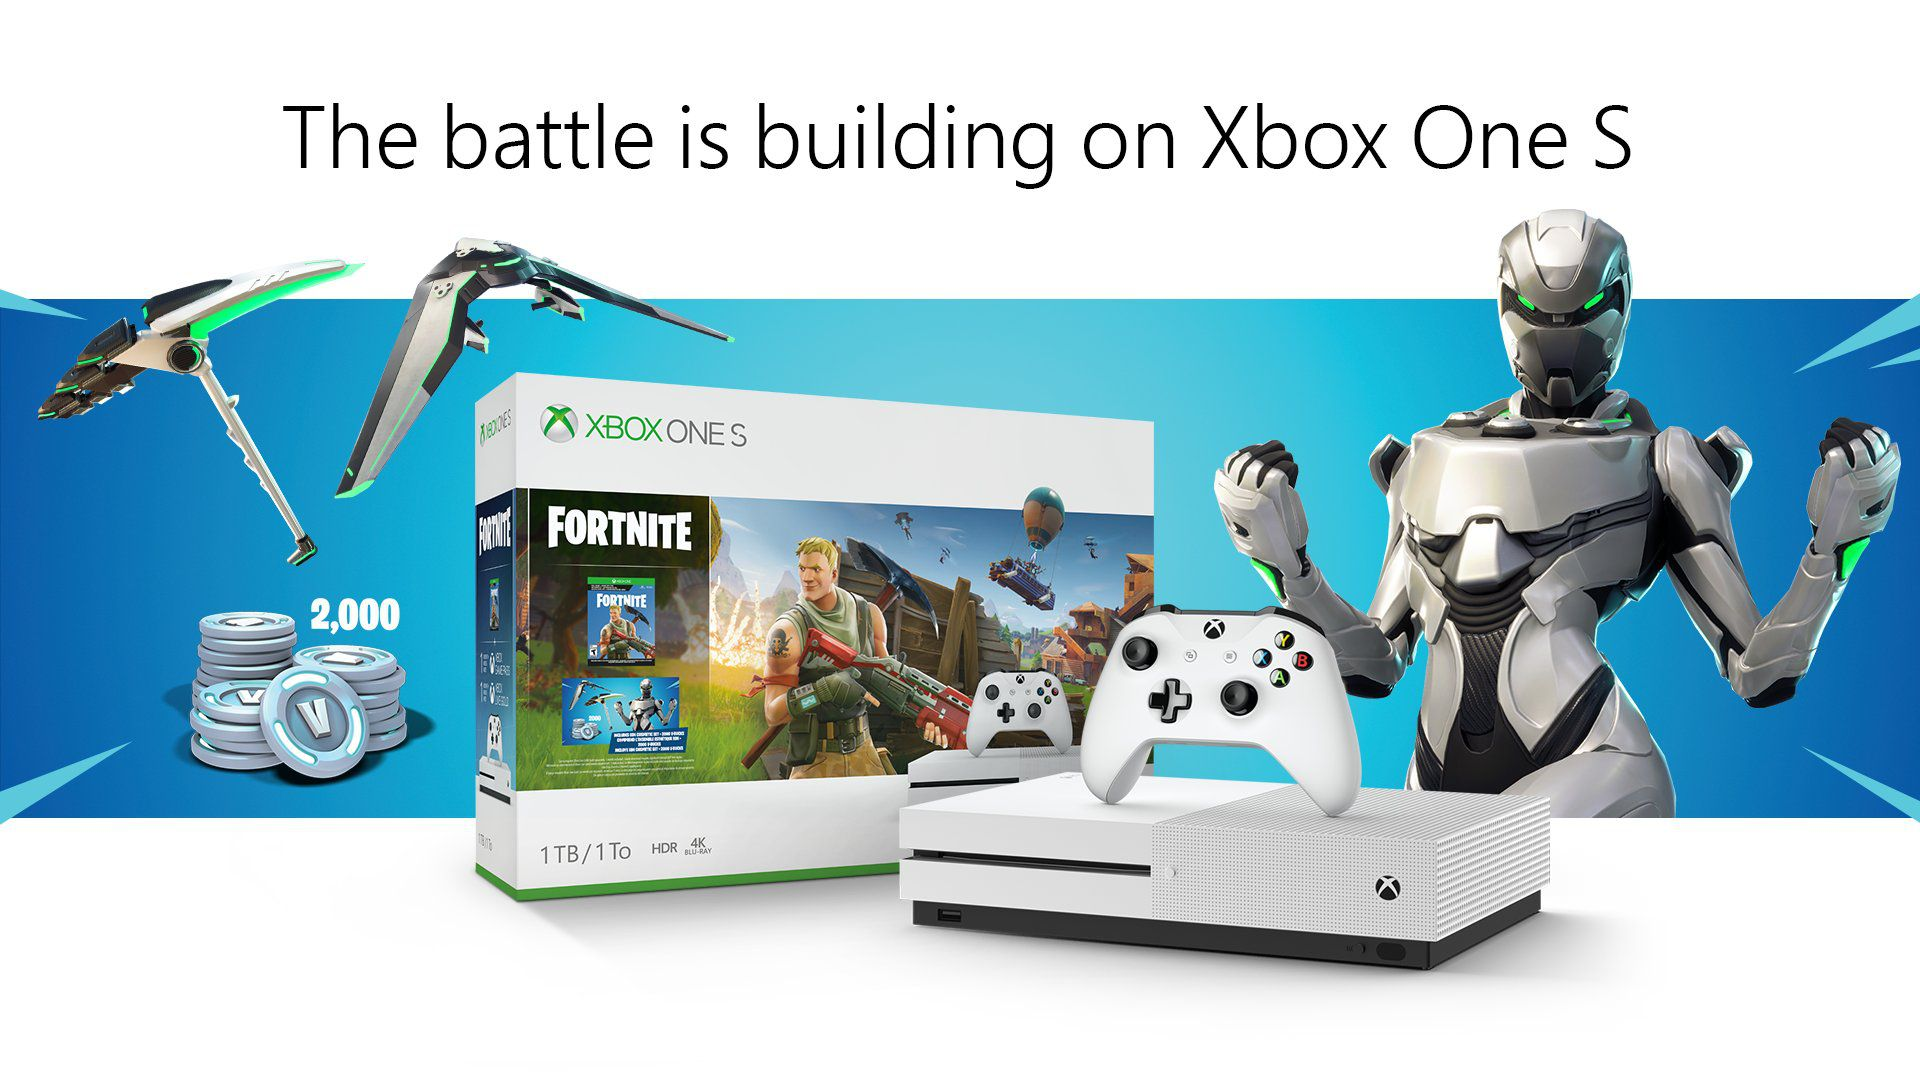 Xbox One S Fortnite Bundle Claims It Features Full Game